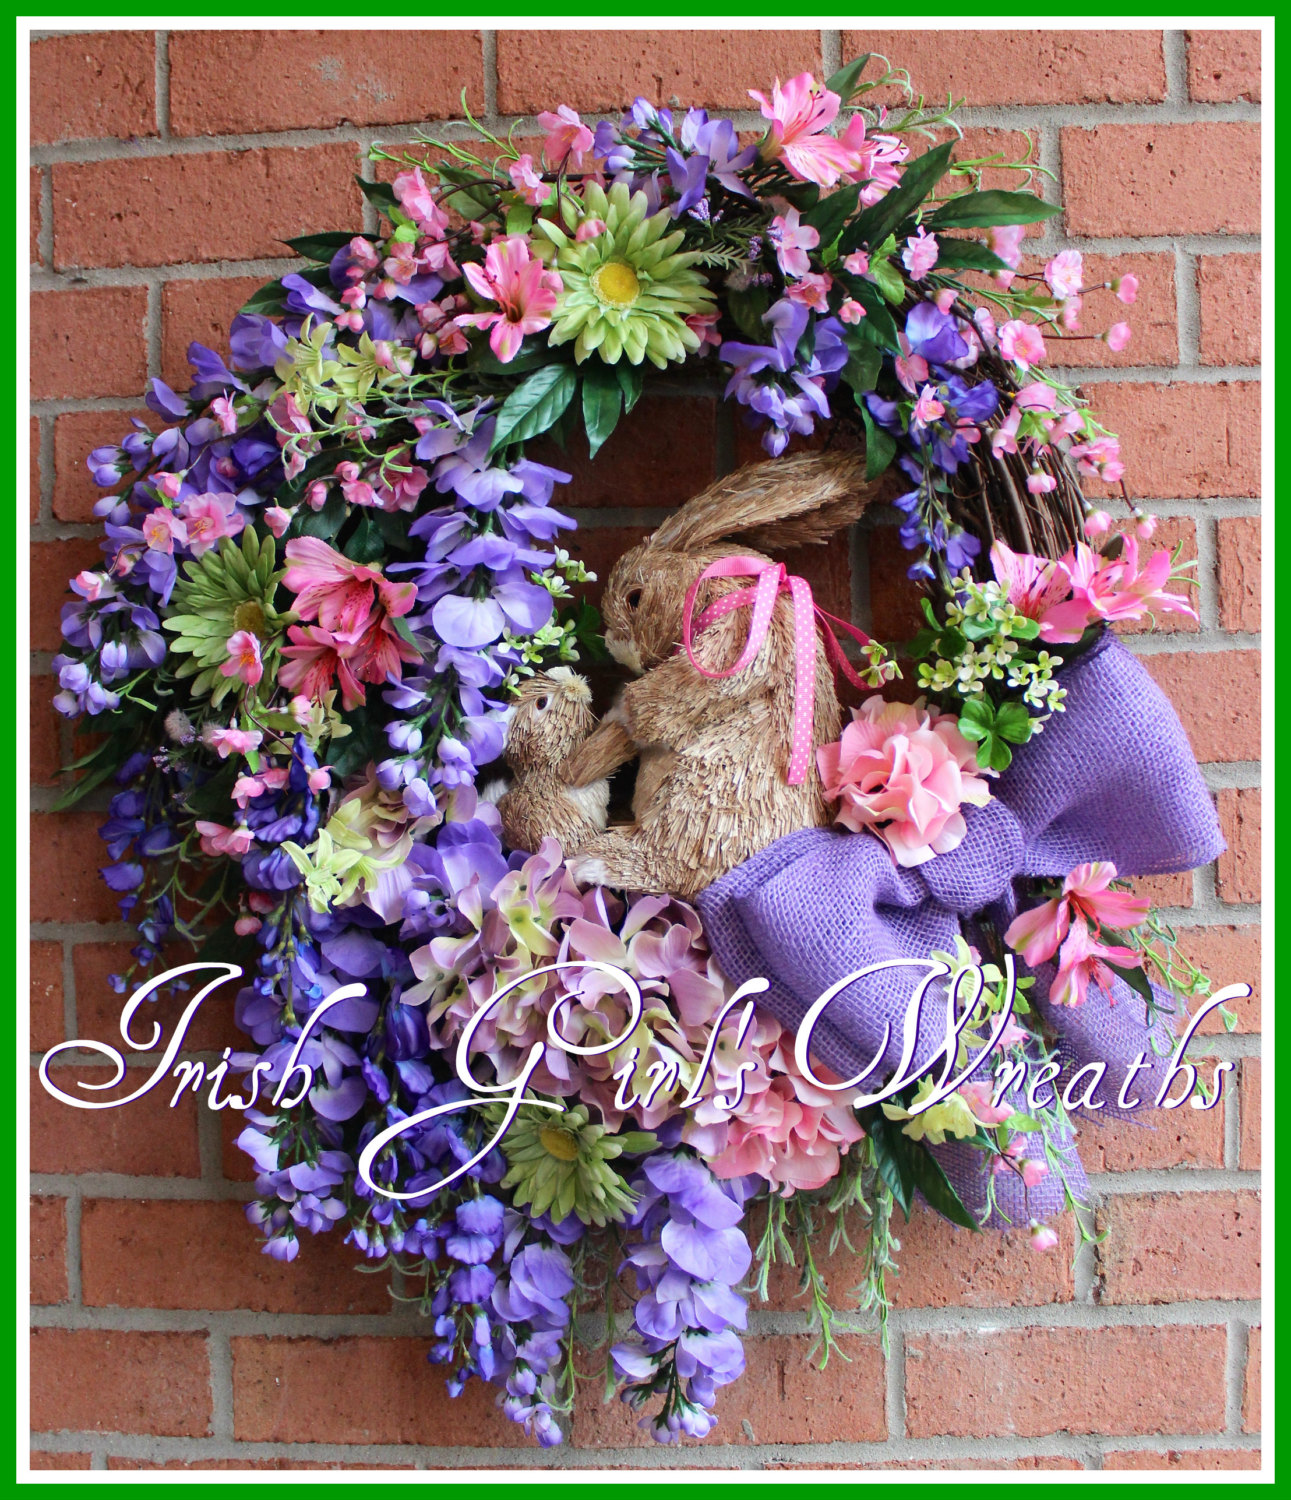 Purple and Pink Wisteria, Cherry Blossom, Hydrangea Spring Bunny Rabbit Wreath